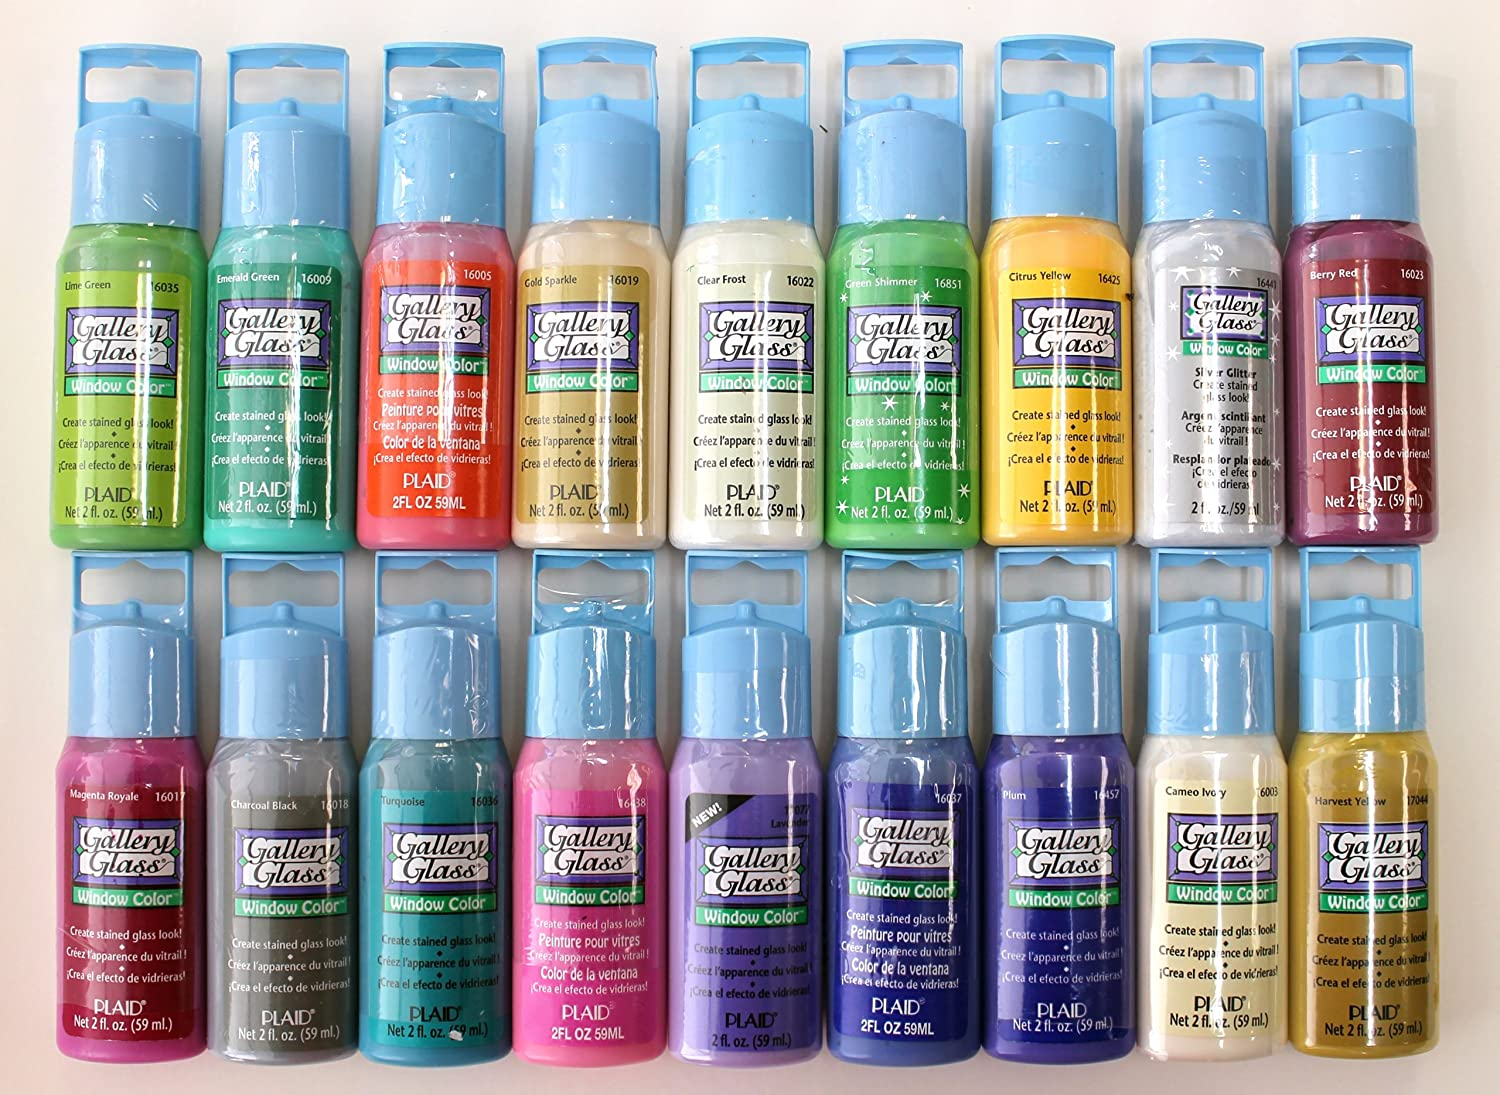 Plaid promoggii gallery glass acrylic paint 2 ounce best for Can i paint glass with acrylic paint